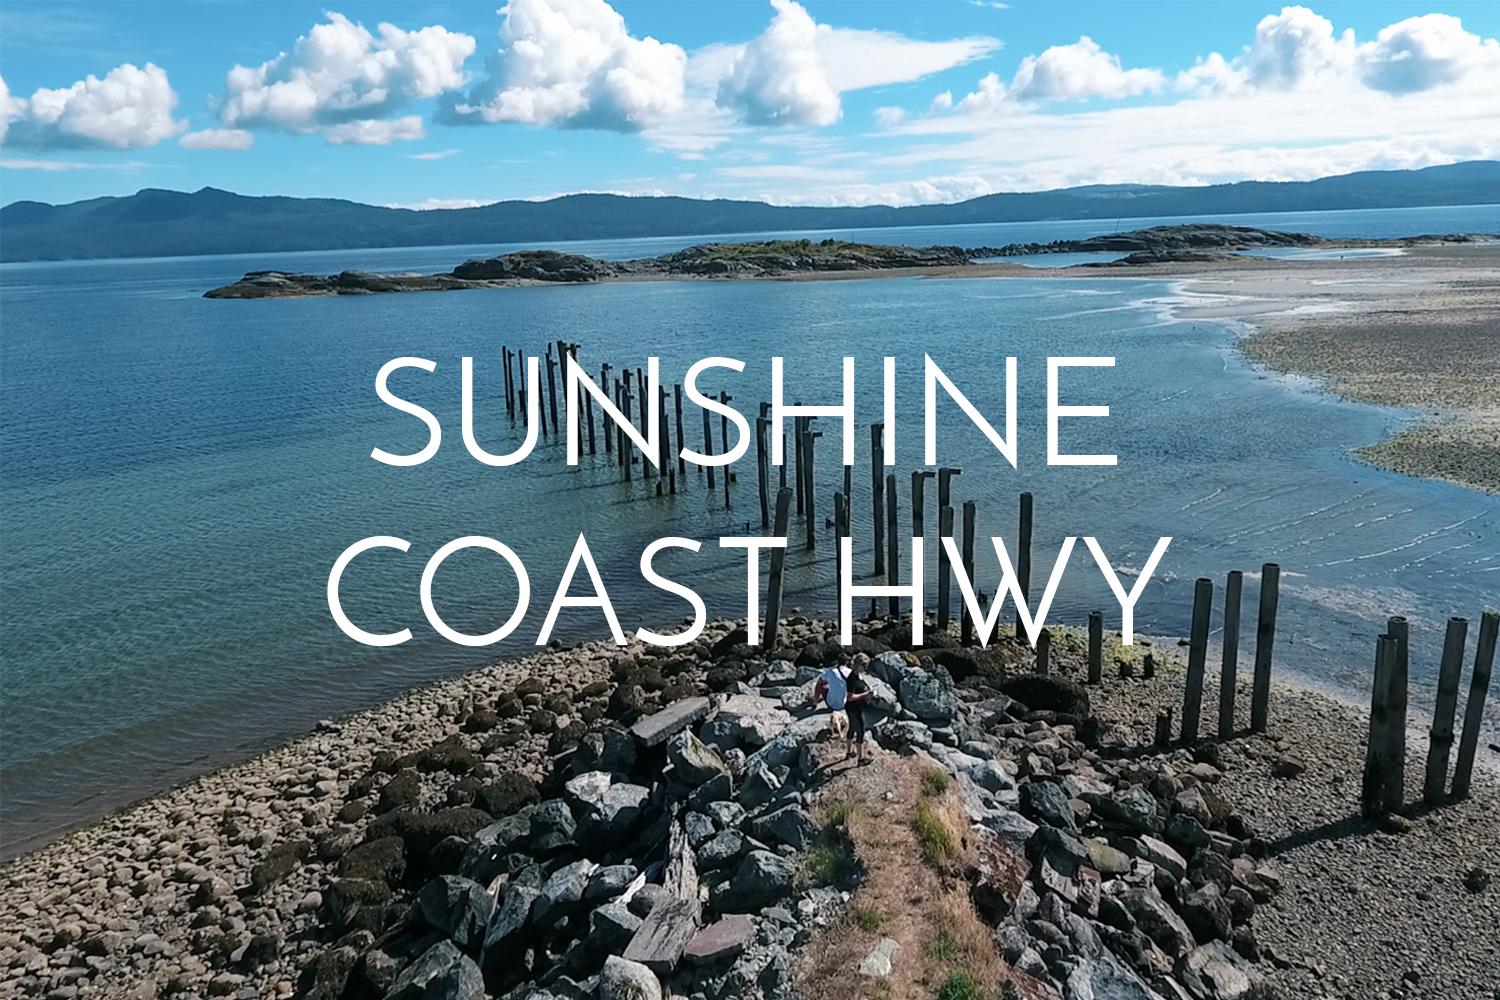 SUNSHINE-COAST-HIGHWAY.jpg